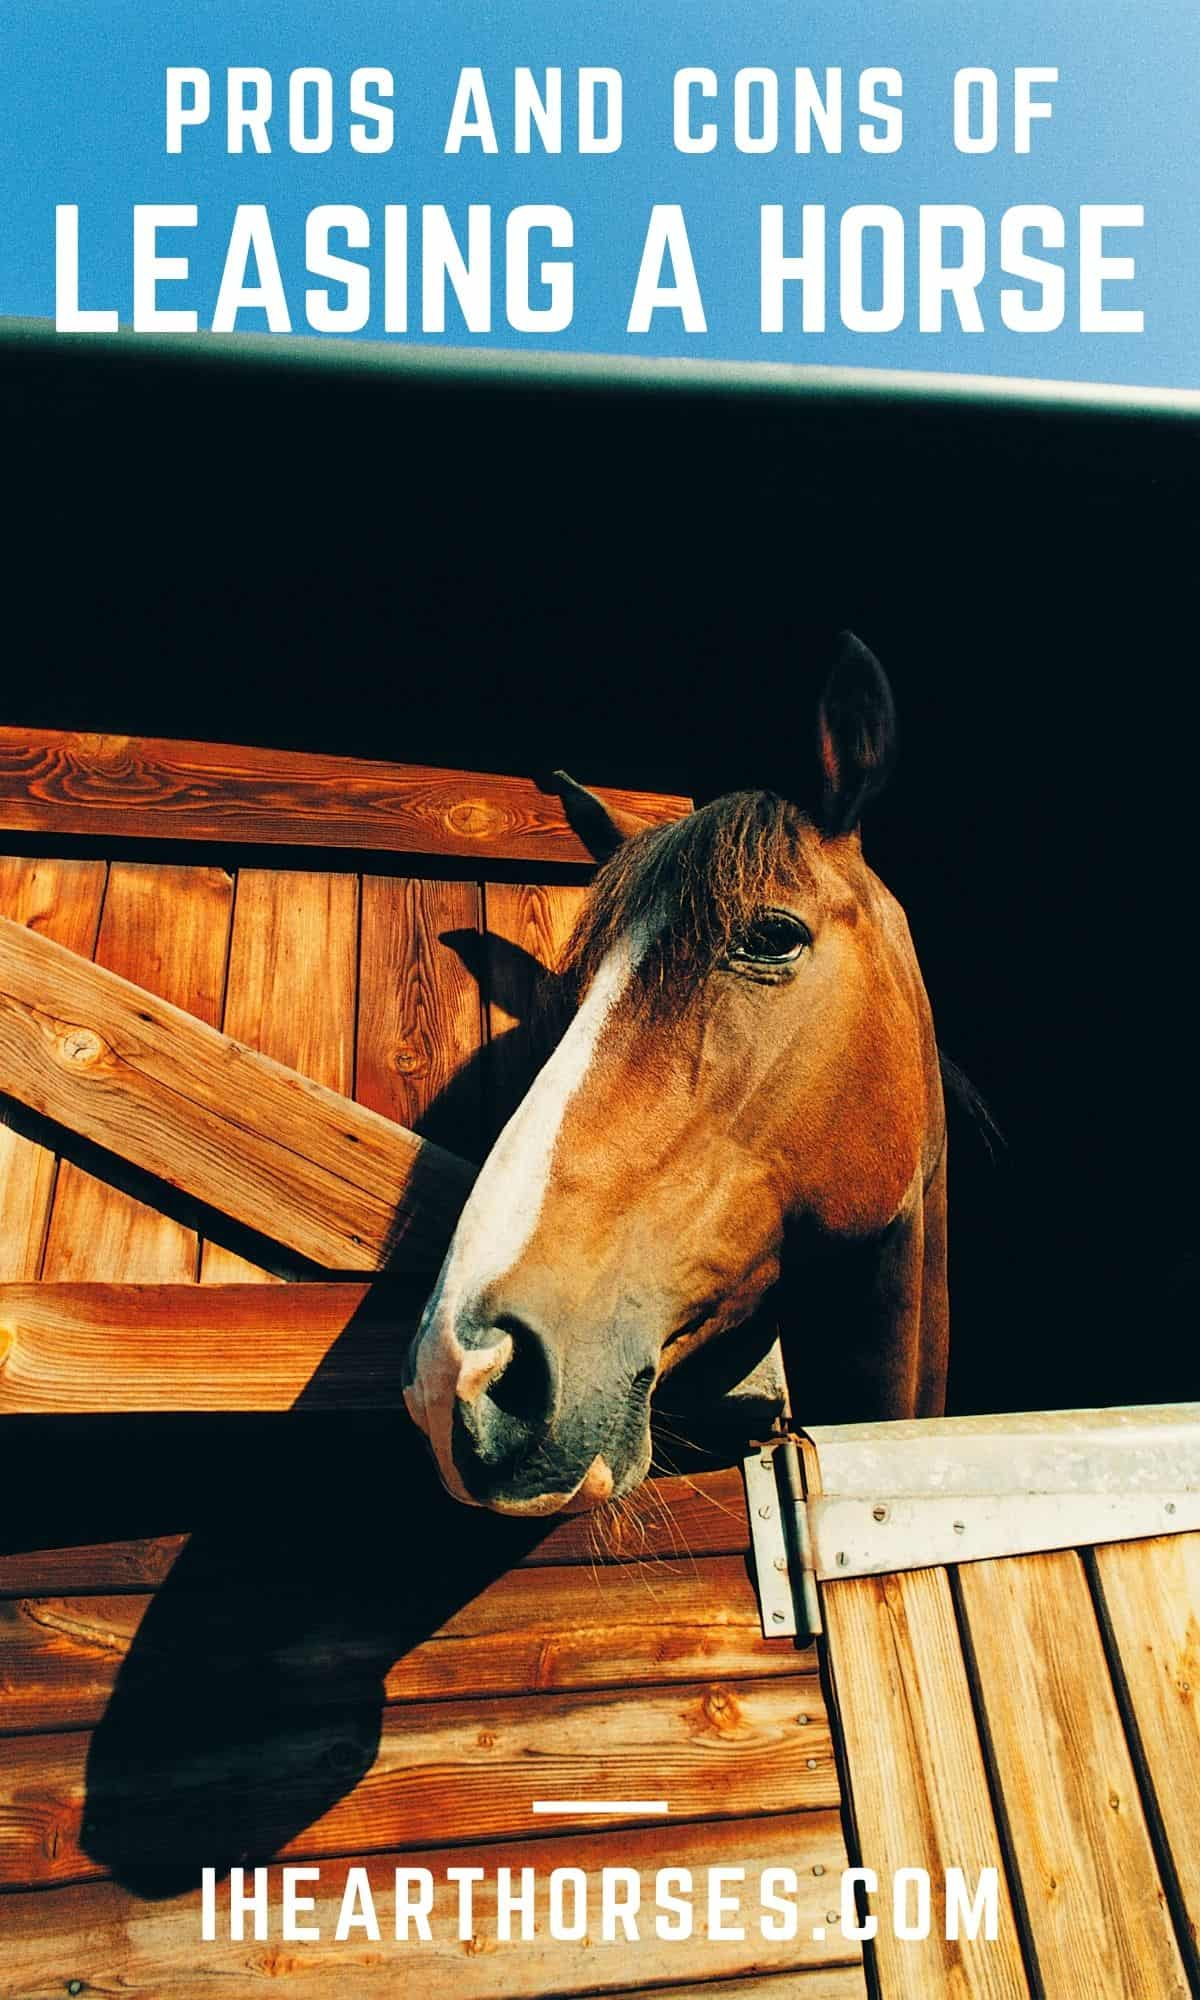 Brown and white horse peering out around wooden barn door